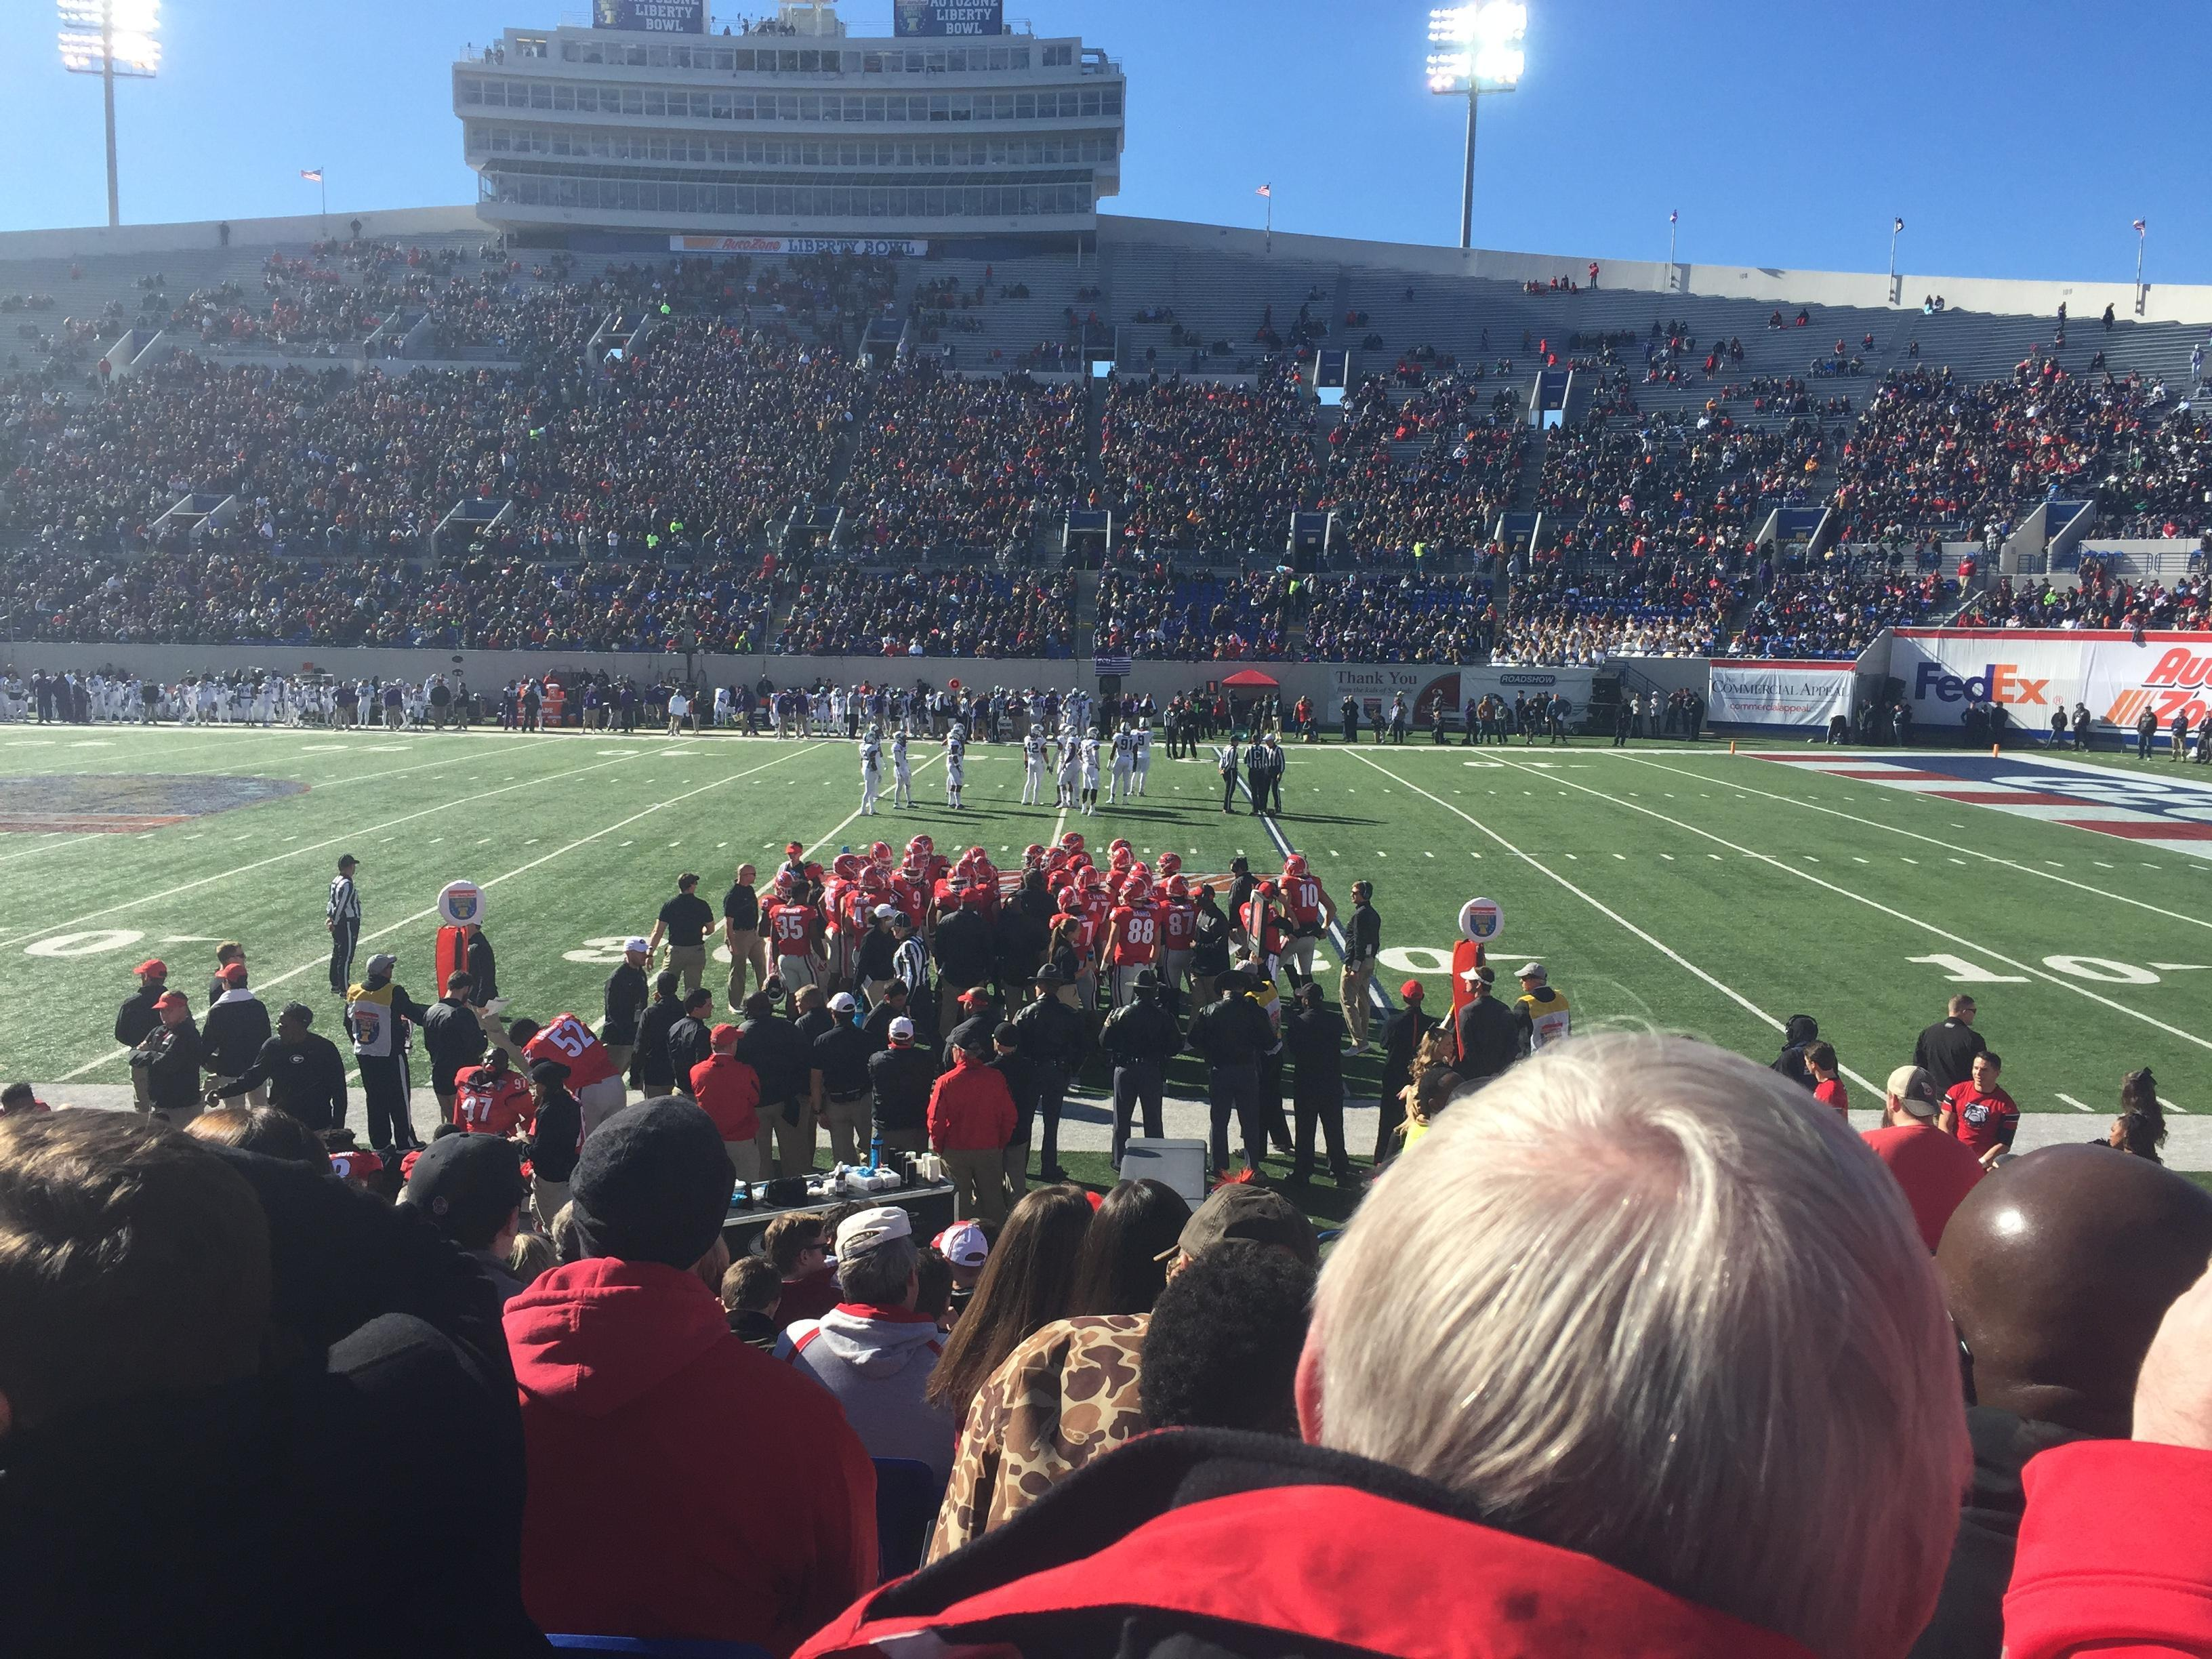 Liberty Bowl Memorial Stadium Section 119 Row 14 Seat 2